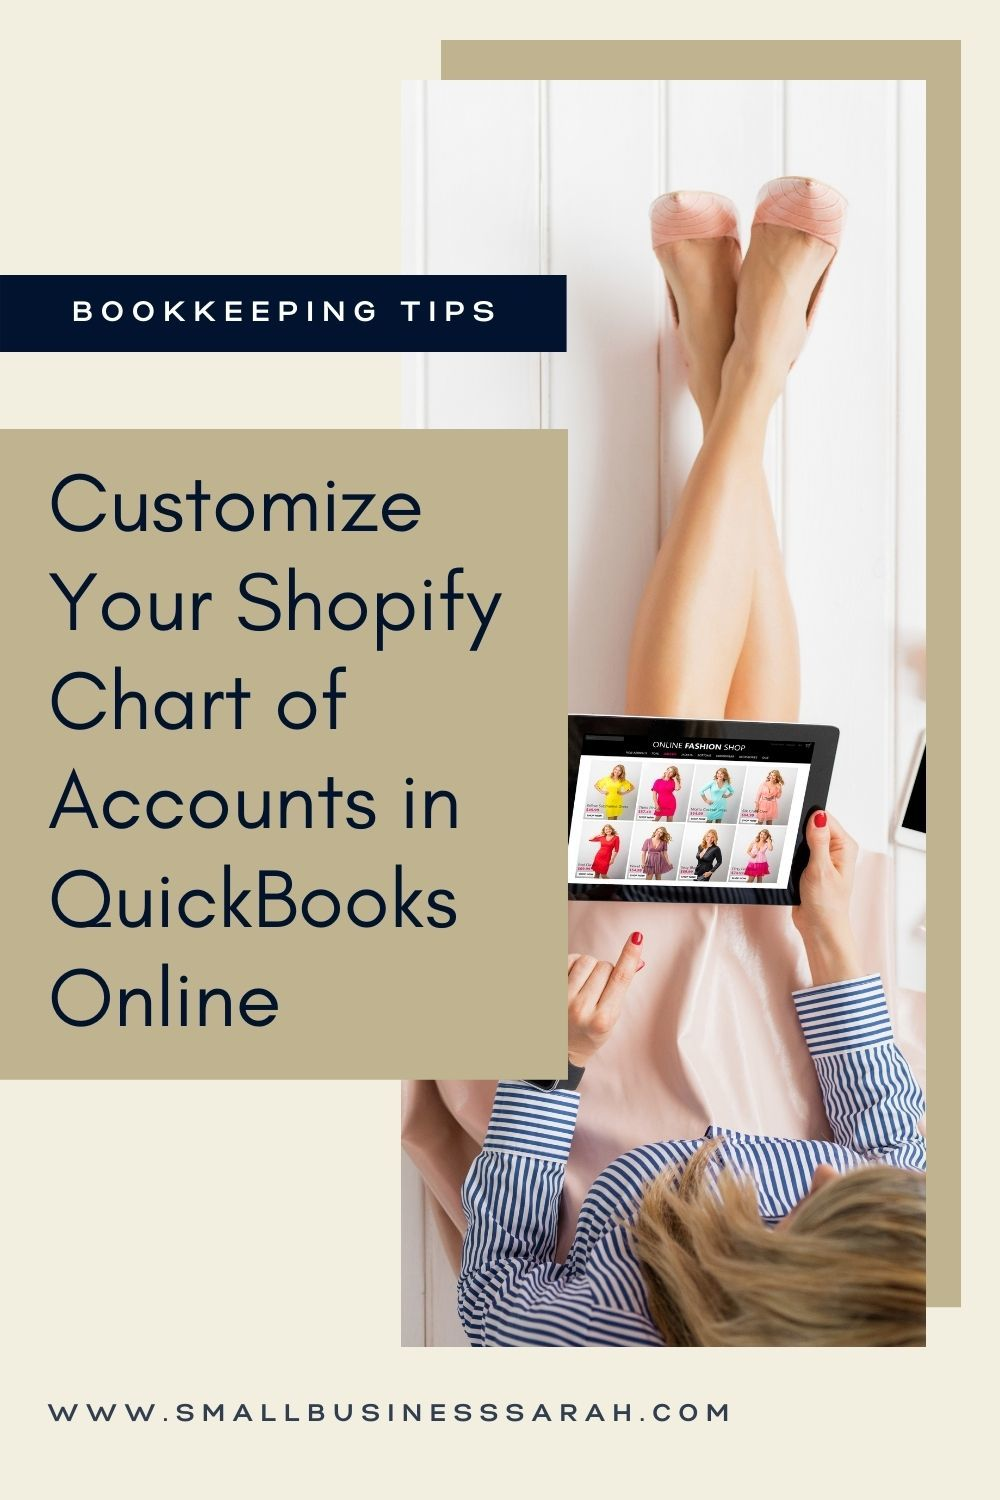 Selling on Shopify? Did you know that you can customize your chart of accounts for Shopify in QuickBooks Online? Check out this post to learn how and download the free chart of accounts.